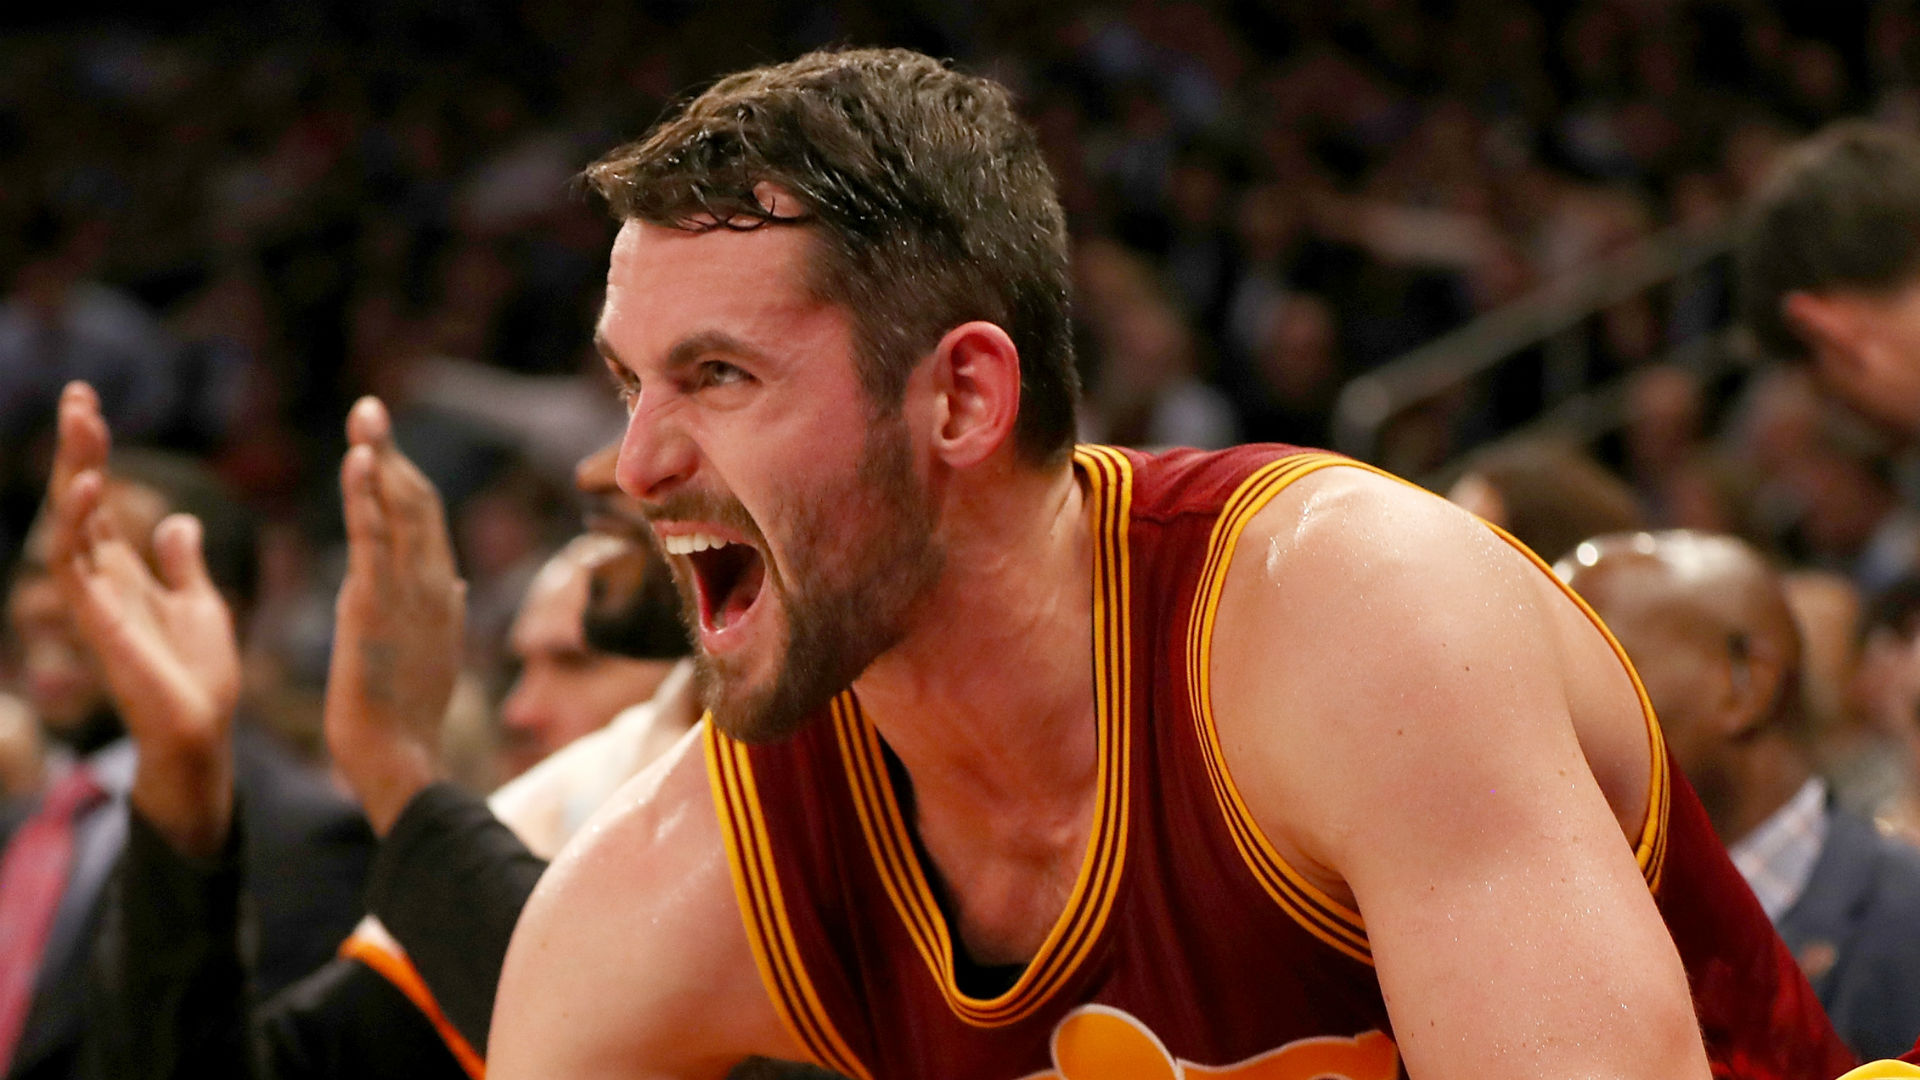 Cavs sign Kevin Love to lucrative four-year extension